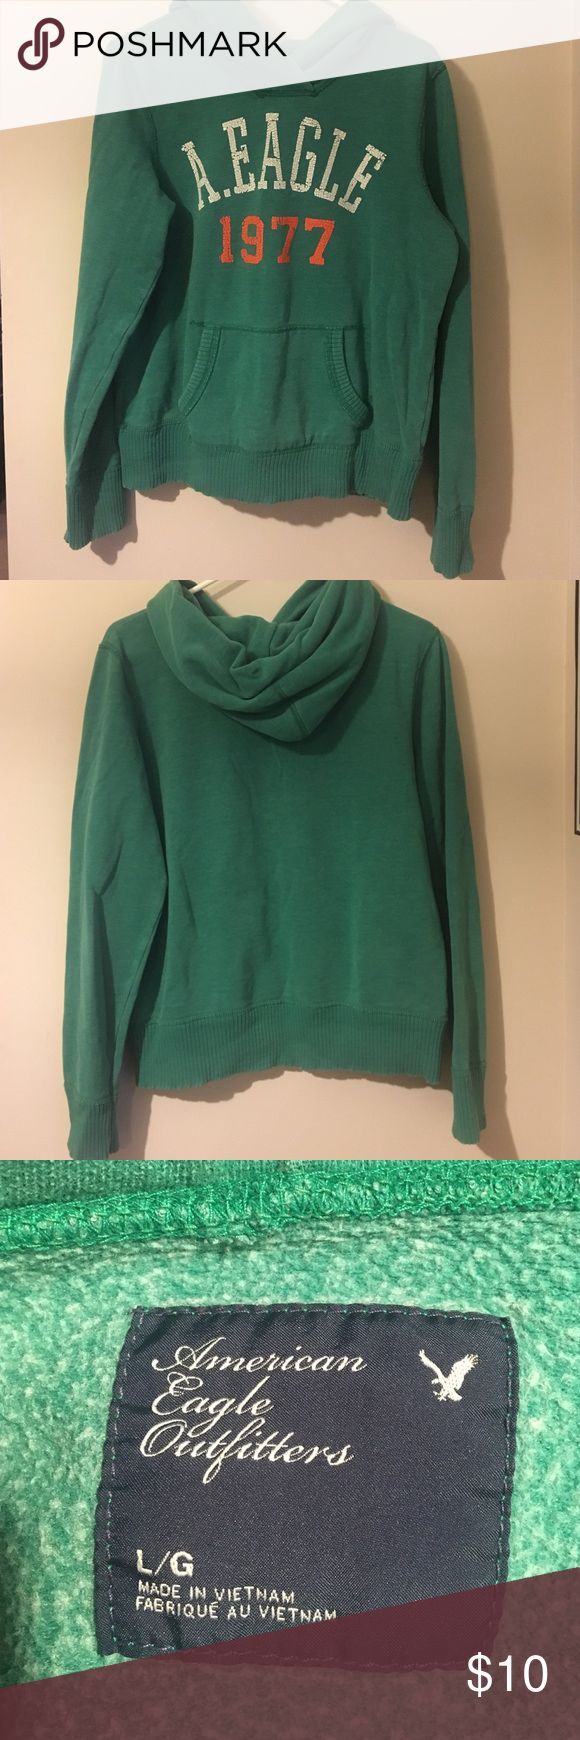 """American Eagle Outfitters Hoodie Sweatshirt Hoodie from American Eagle Outfitters, size large. Pre-loved condition but it was also made to have a """"worn"""" look. American Eagle Outfitters Tops Sweatshirts & Hoodies"""